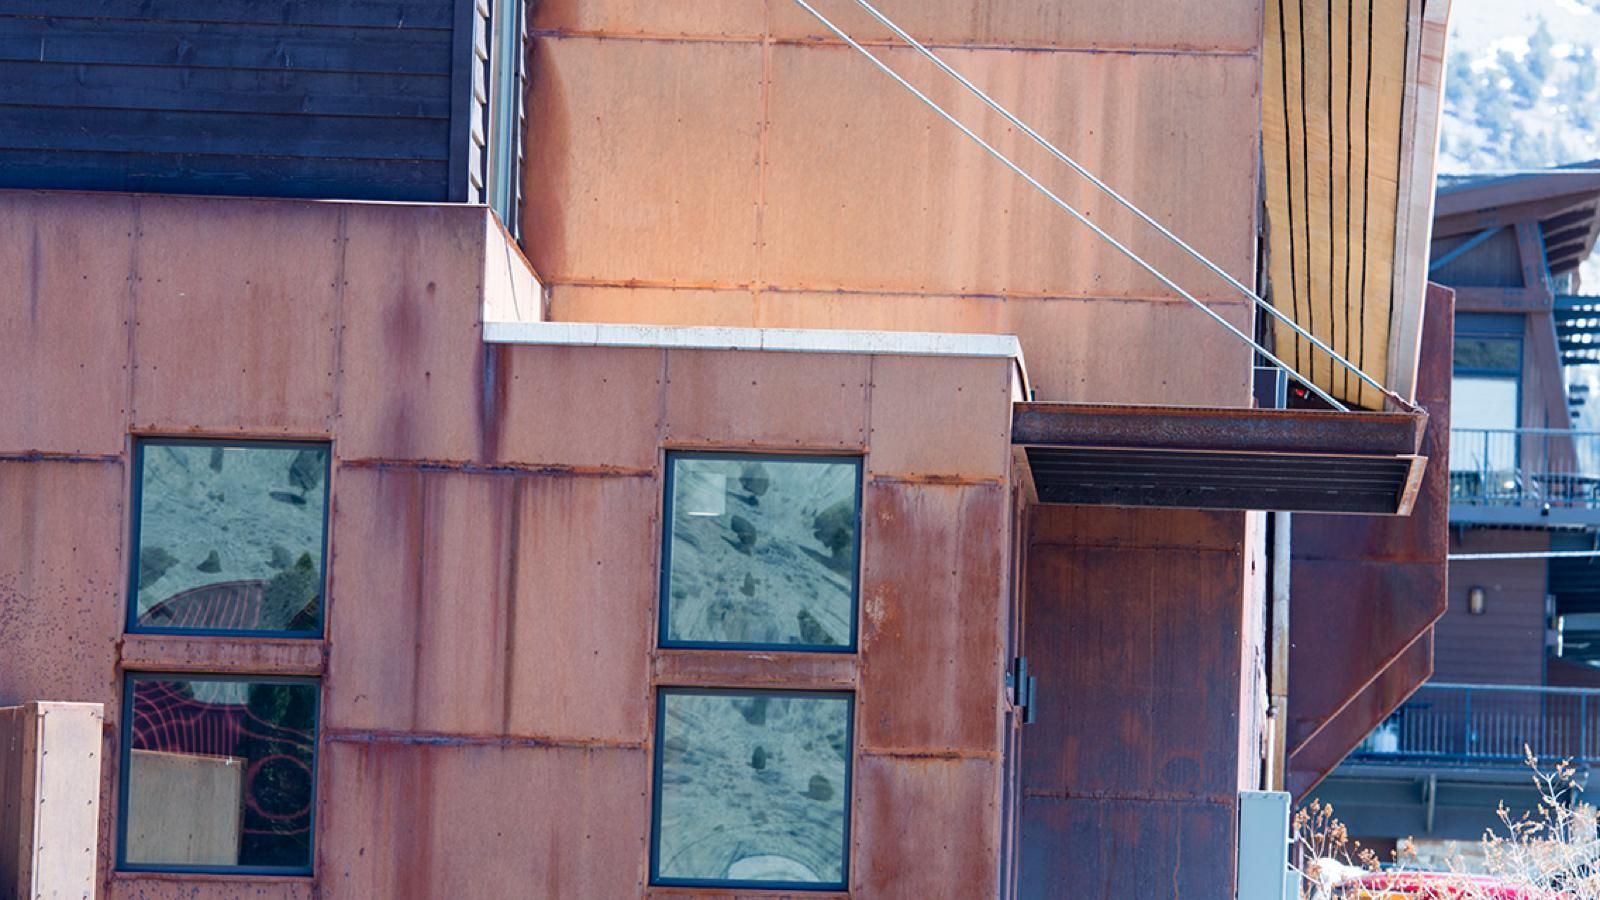 Cold Rolled Weathering Steel Rustic Flat Wall Siding Rustic Metal Weathering Steel Rustic